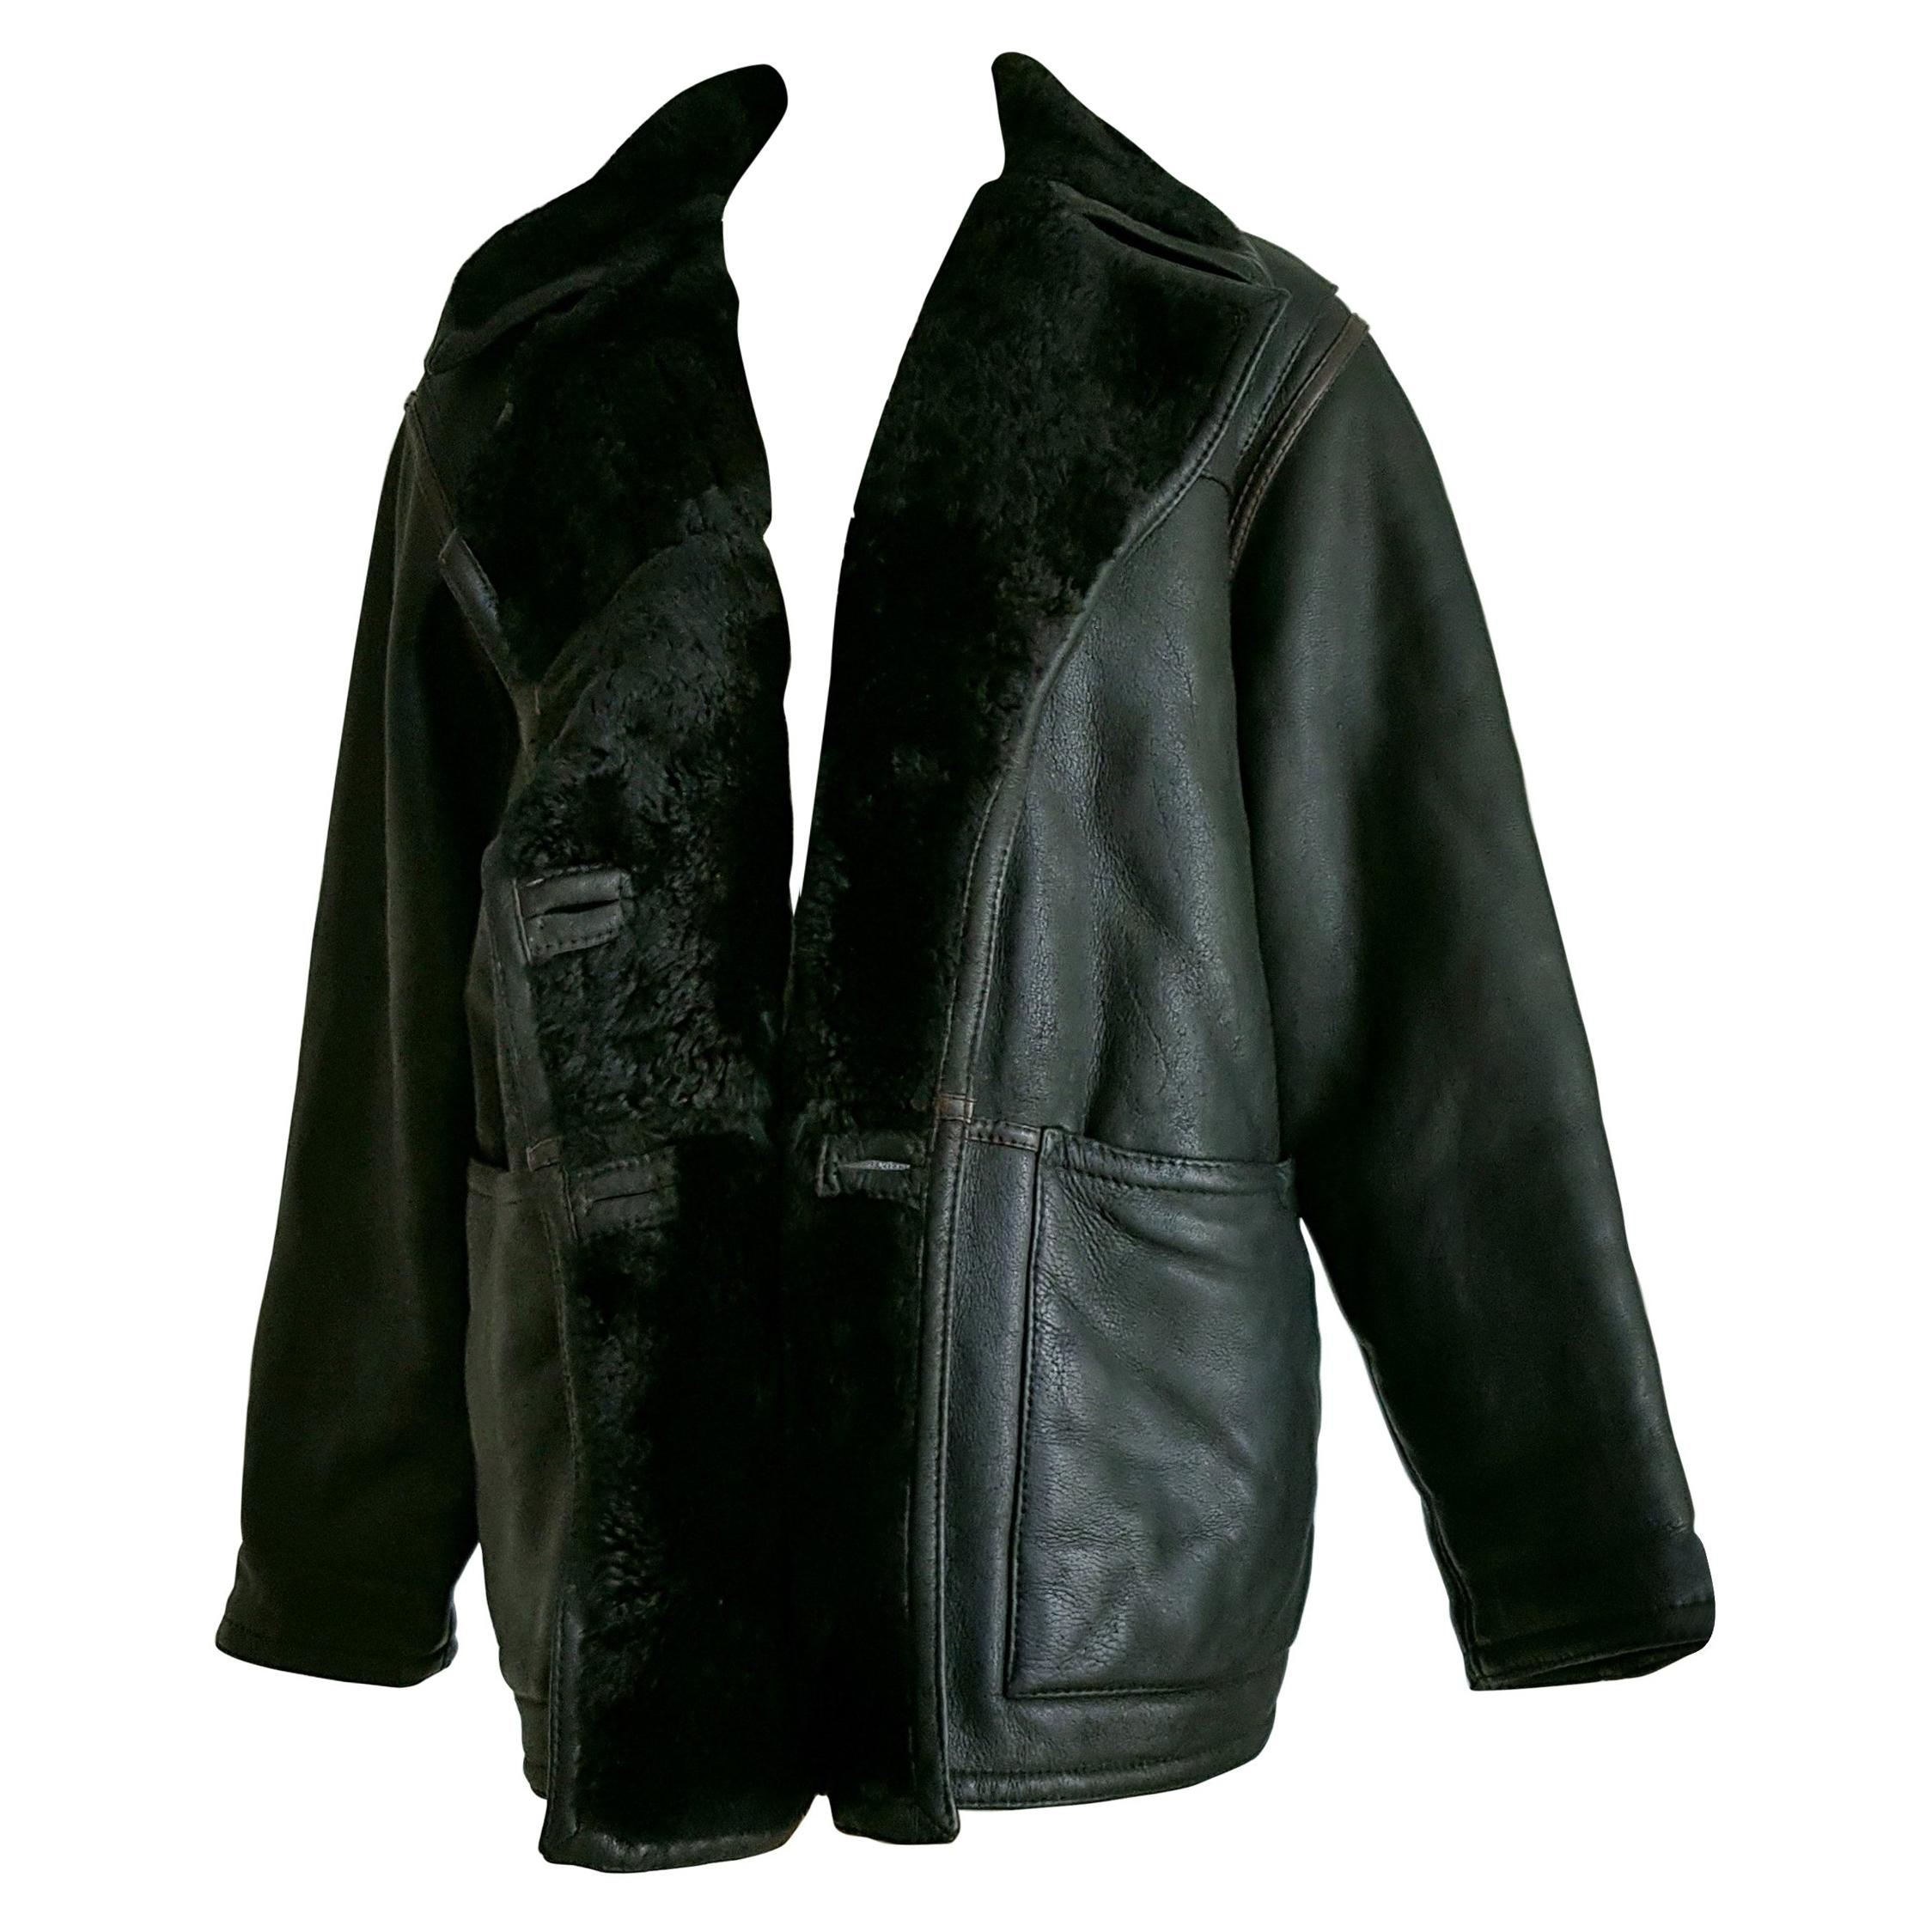 f4fd7029be1c Brown Leather Jackets - 90 For Sale on 1stdibs